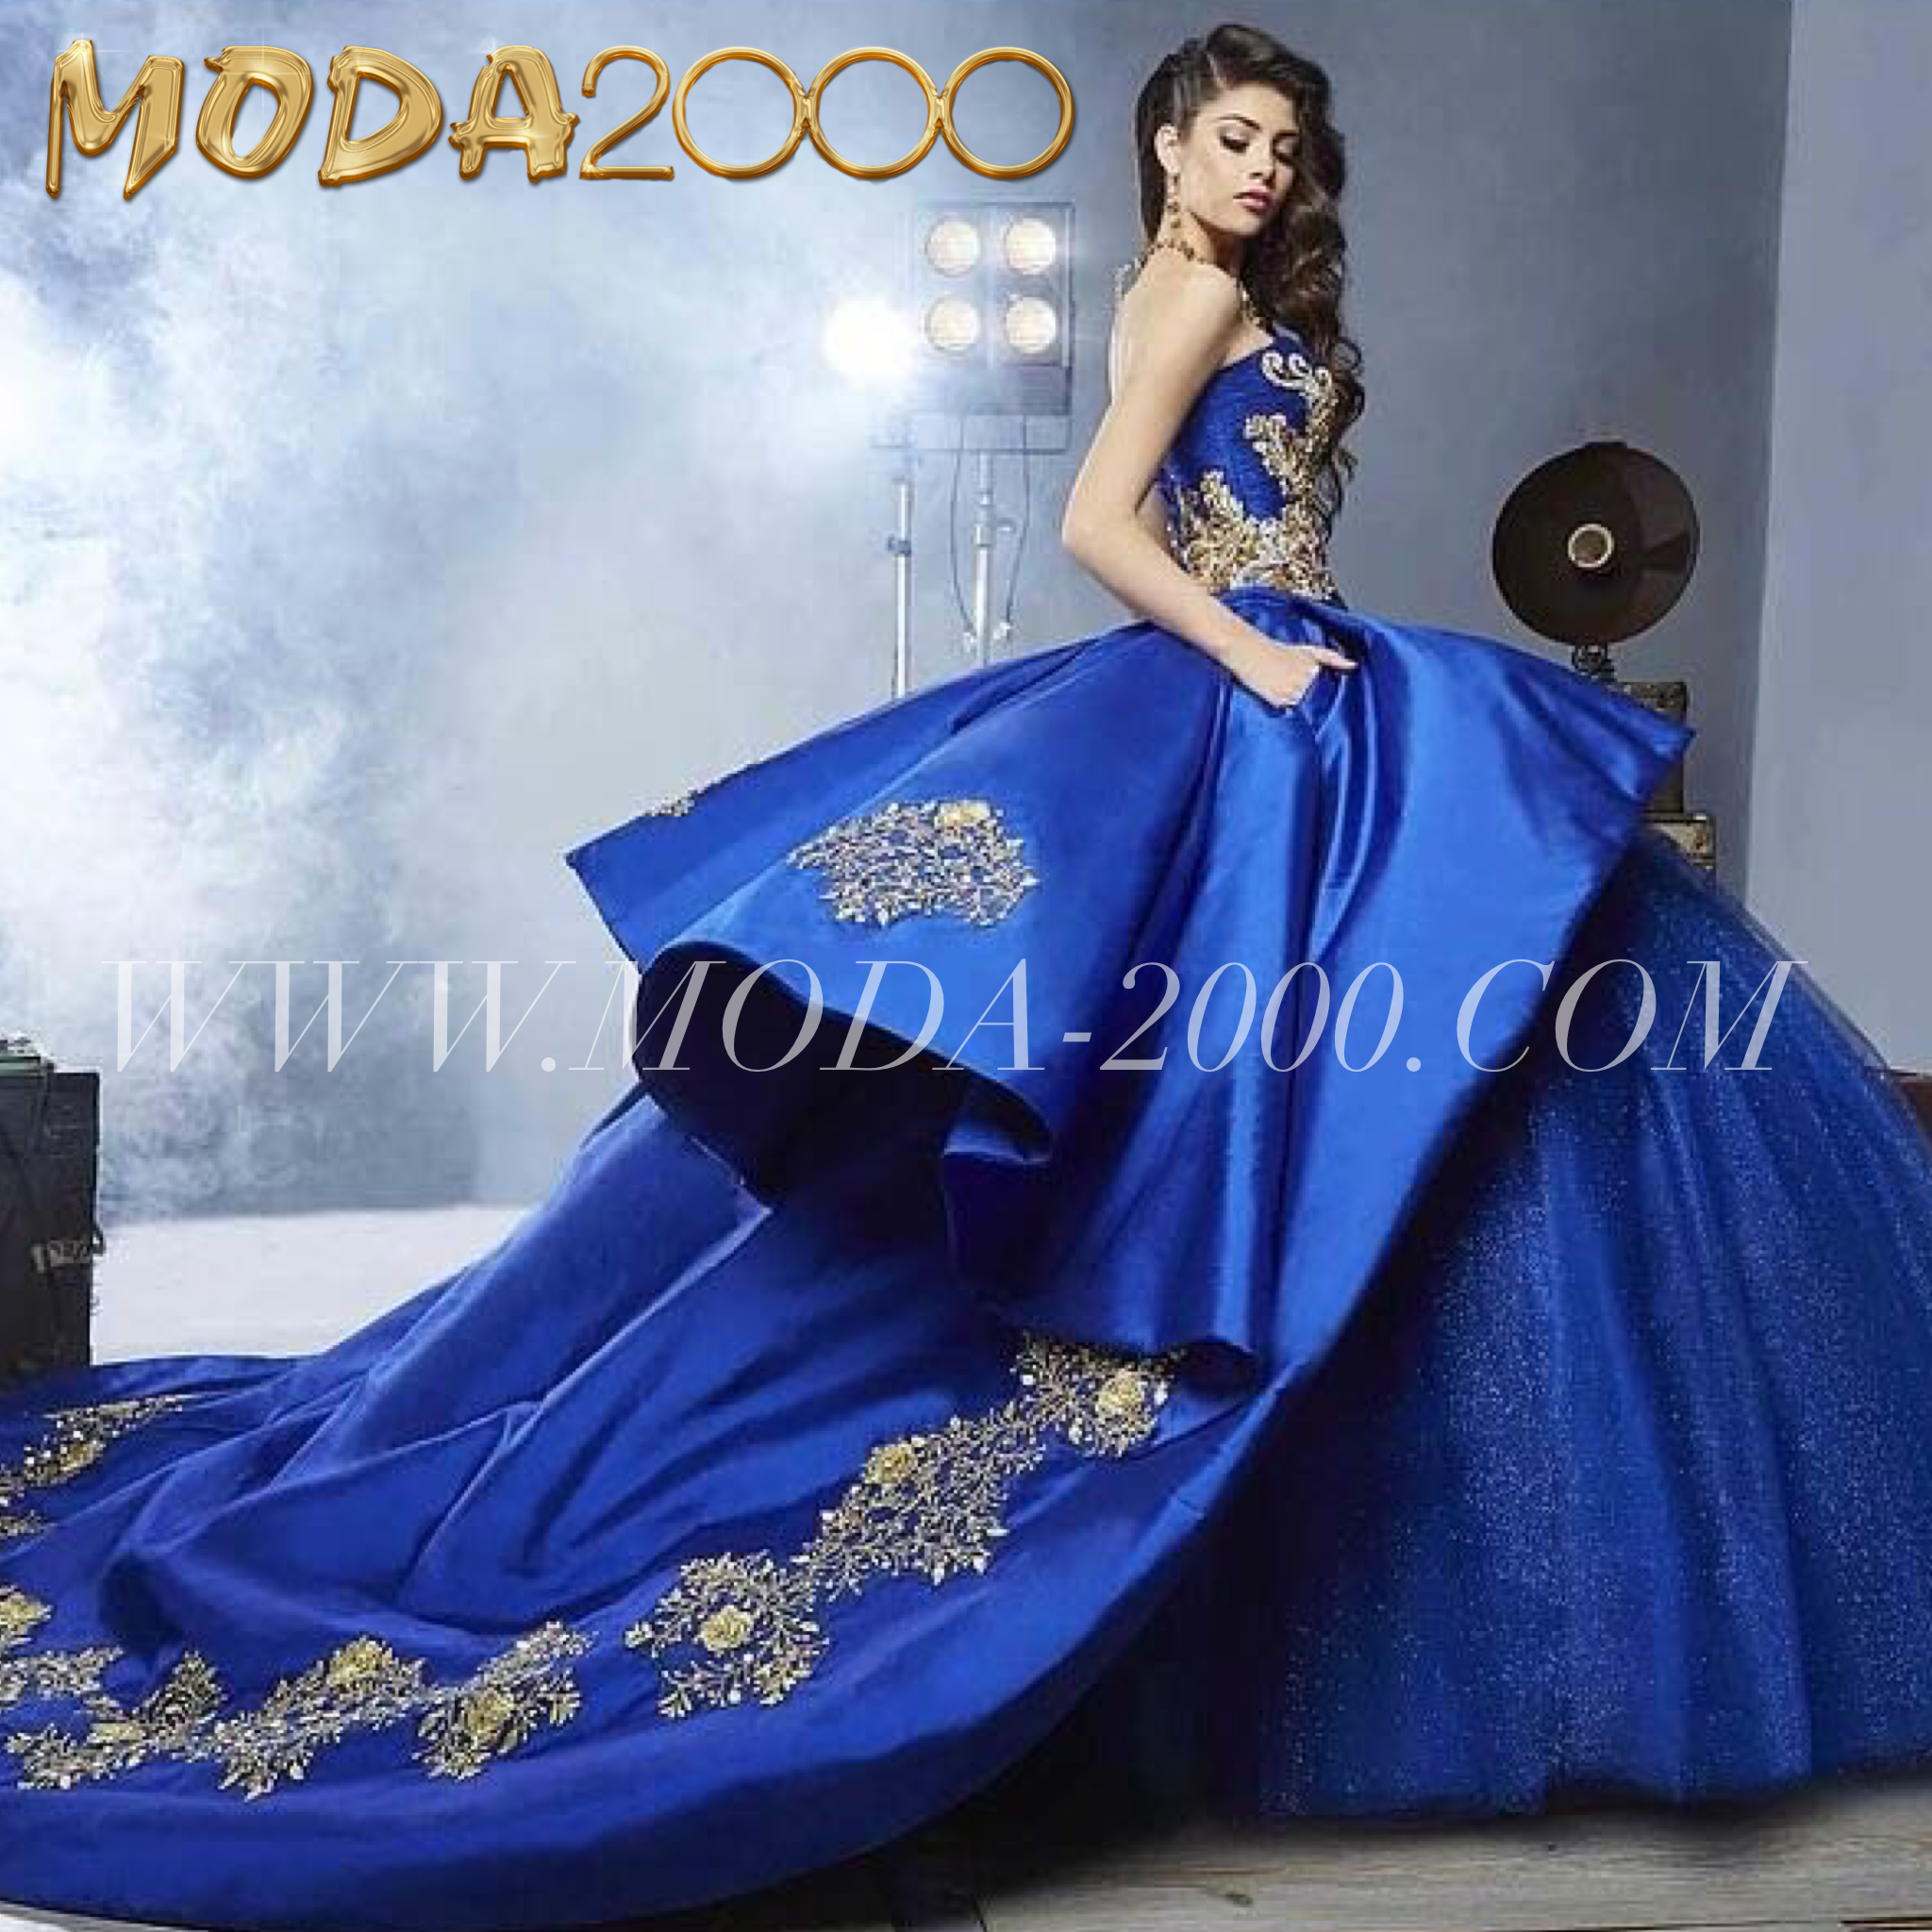 b6211873f06 jeweled navy blue gold charro quinceanera dress available at Moda 2000✨  Instagram   moda2000inc